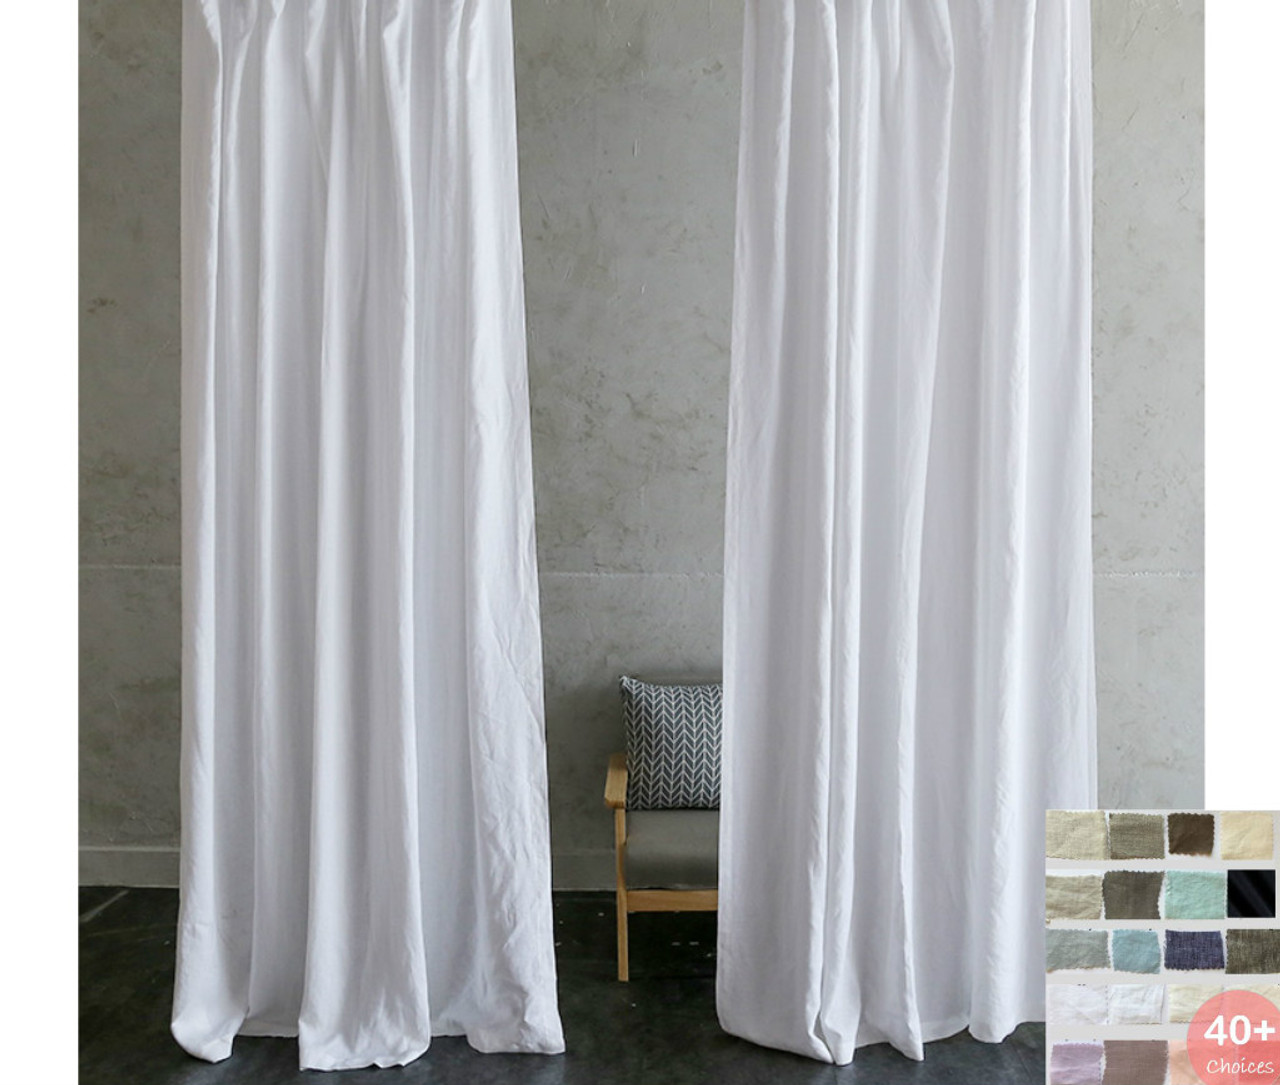 Custom Curtains, Linen Curtain Panels, - White, Grey, Cream, Pink